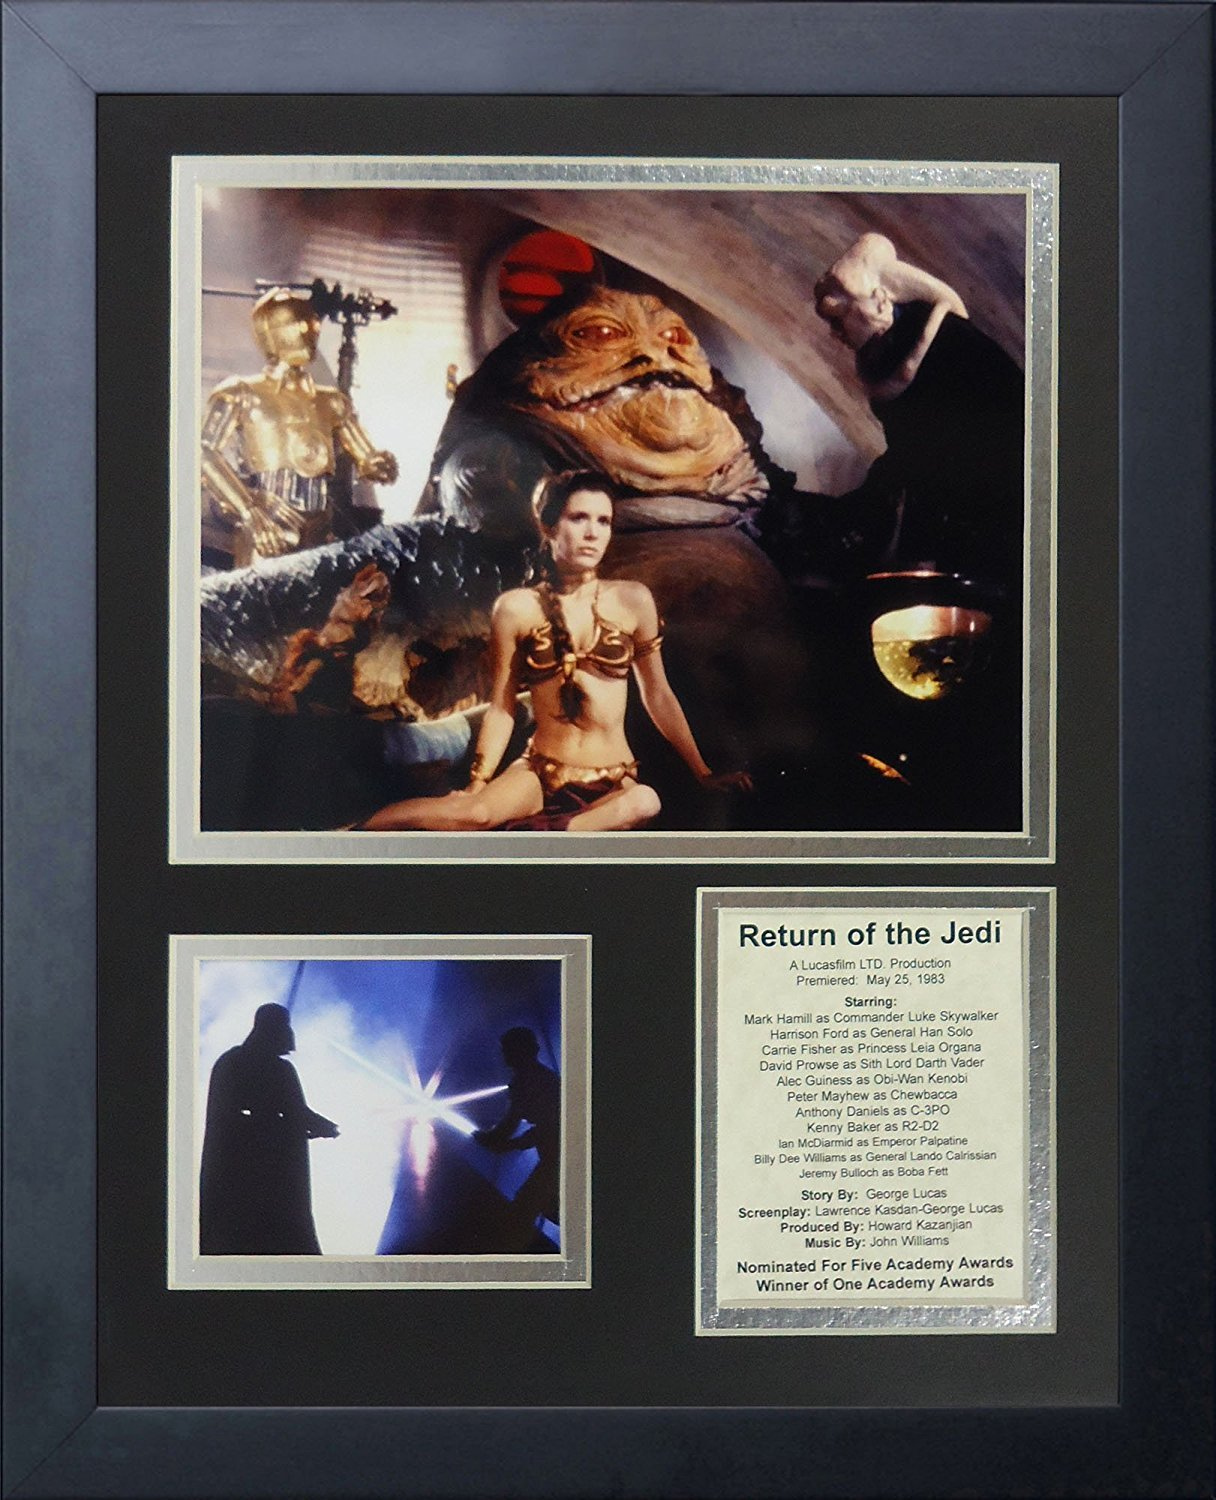 Legends Never Die Star Wars: Return of the Jedi Action Framed Photo Collage, 11 by 14-Inch 16215U